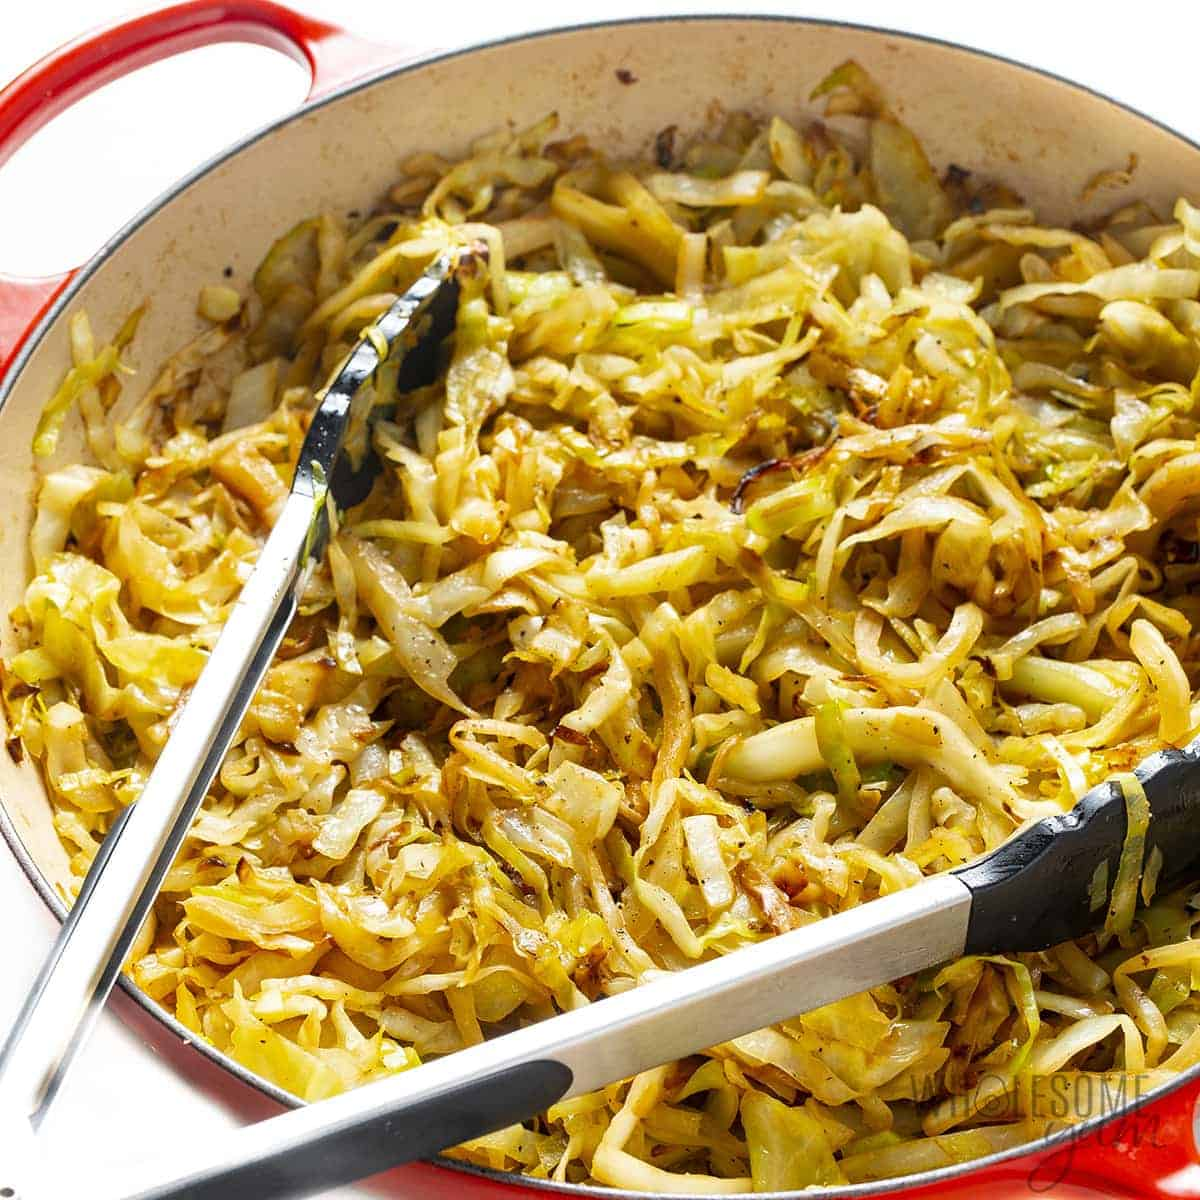 Finished sauteed cabbage recipe in a pan